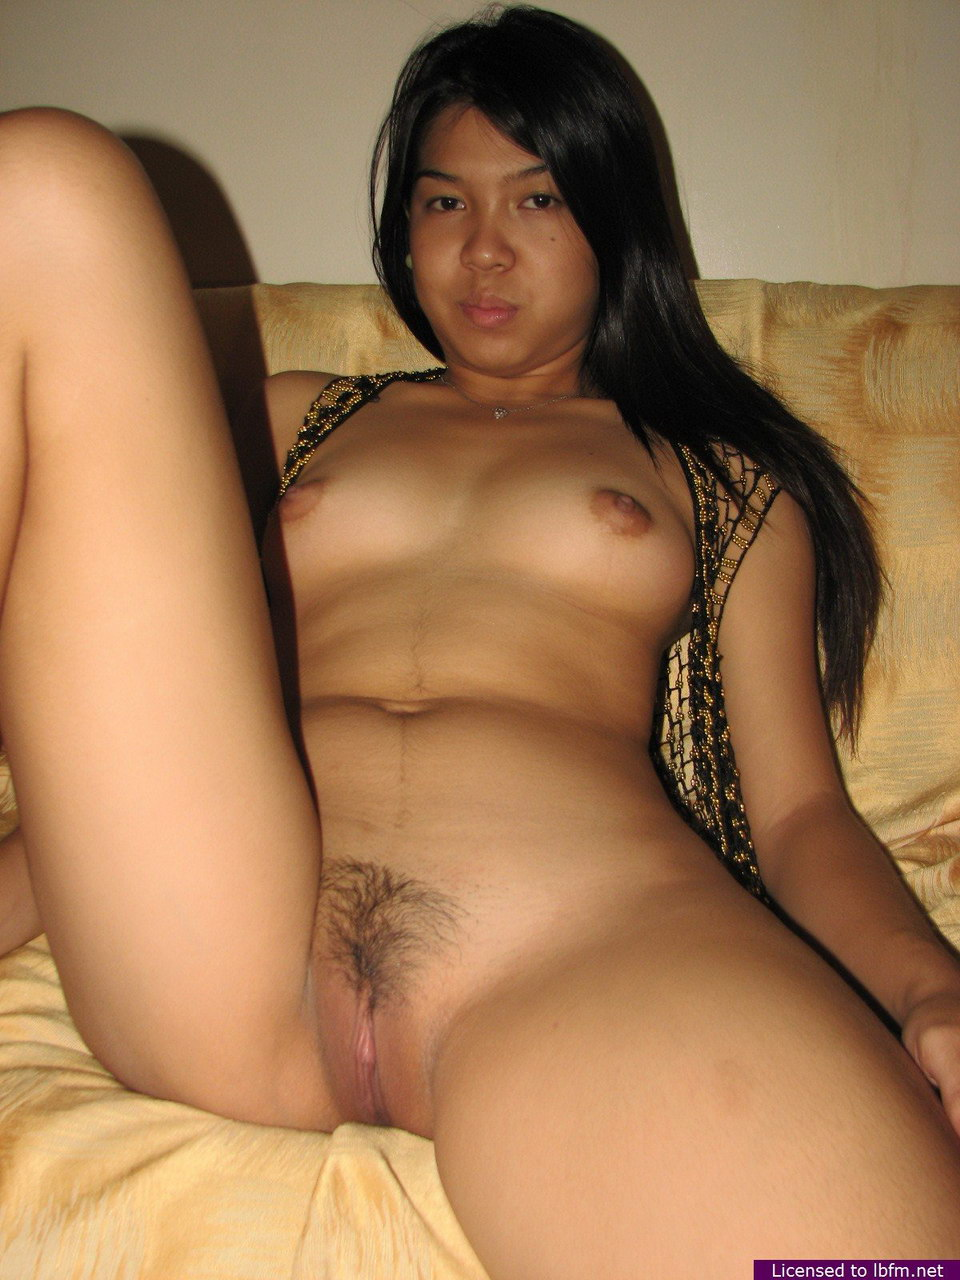 Khmer girl nude leaked amusing piece